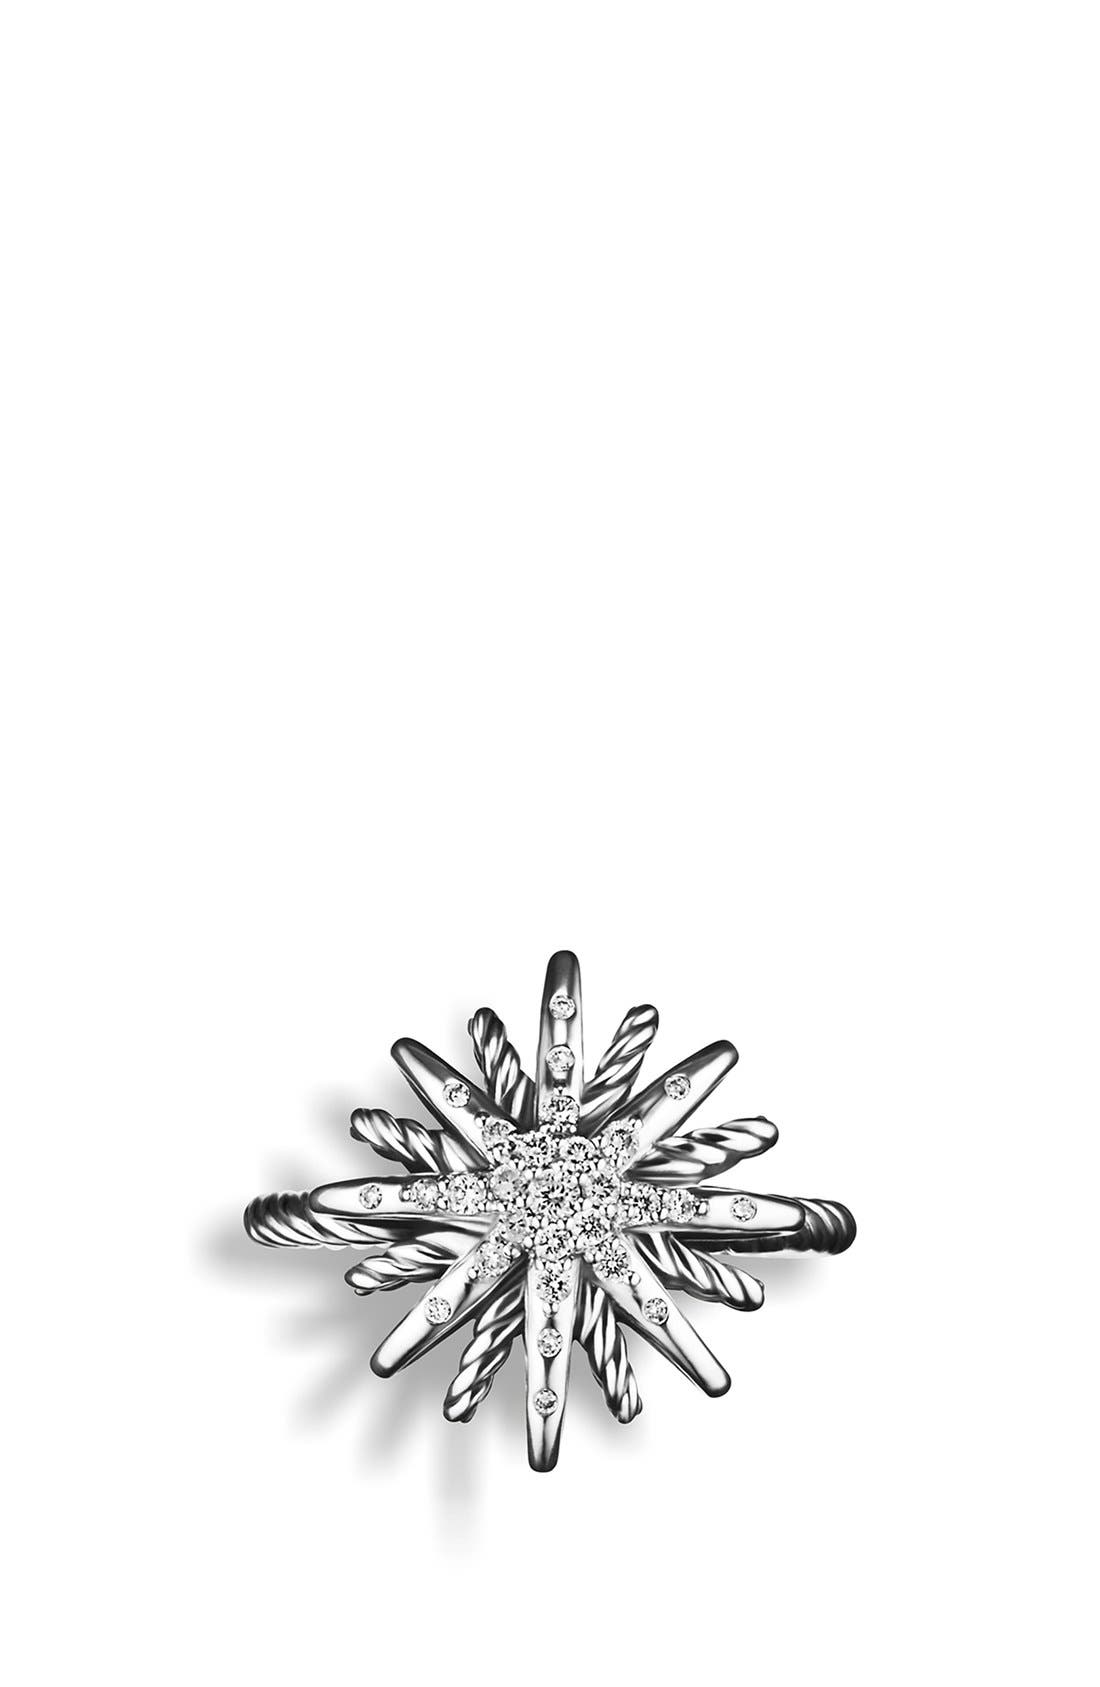 'Starburst' Ring with Diamonds,                             Alternate thumbnail 3, color,                             040